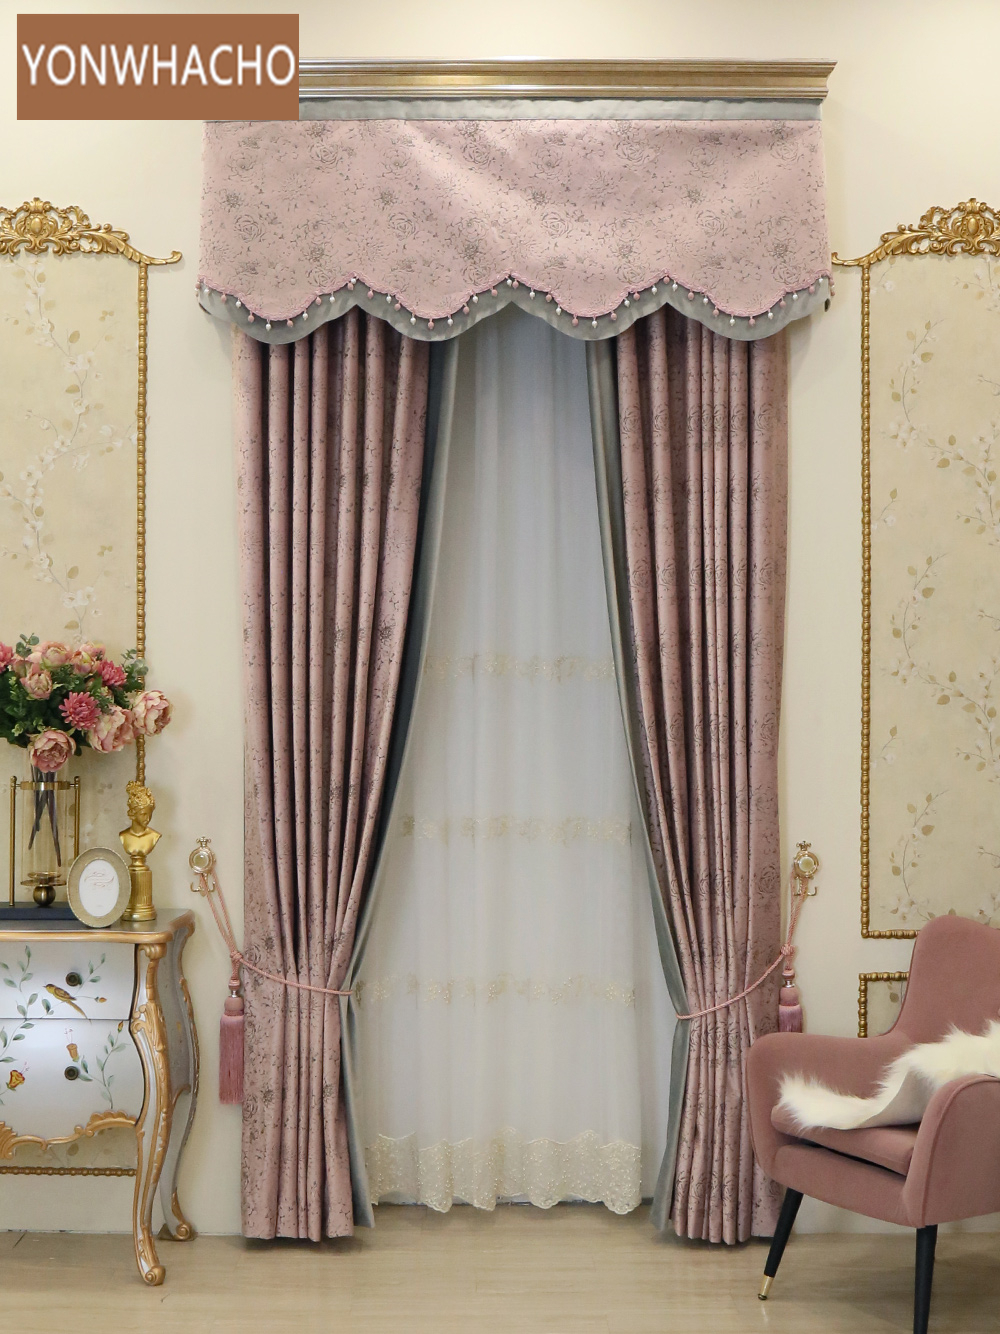 Custom Curtains Warm Pink Korean Pastoral Flannel Upscale Bedroom American  Cloth Blackout Curtain Valance Tulle Panel B556